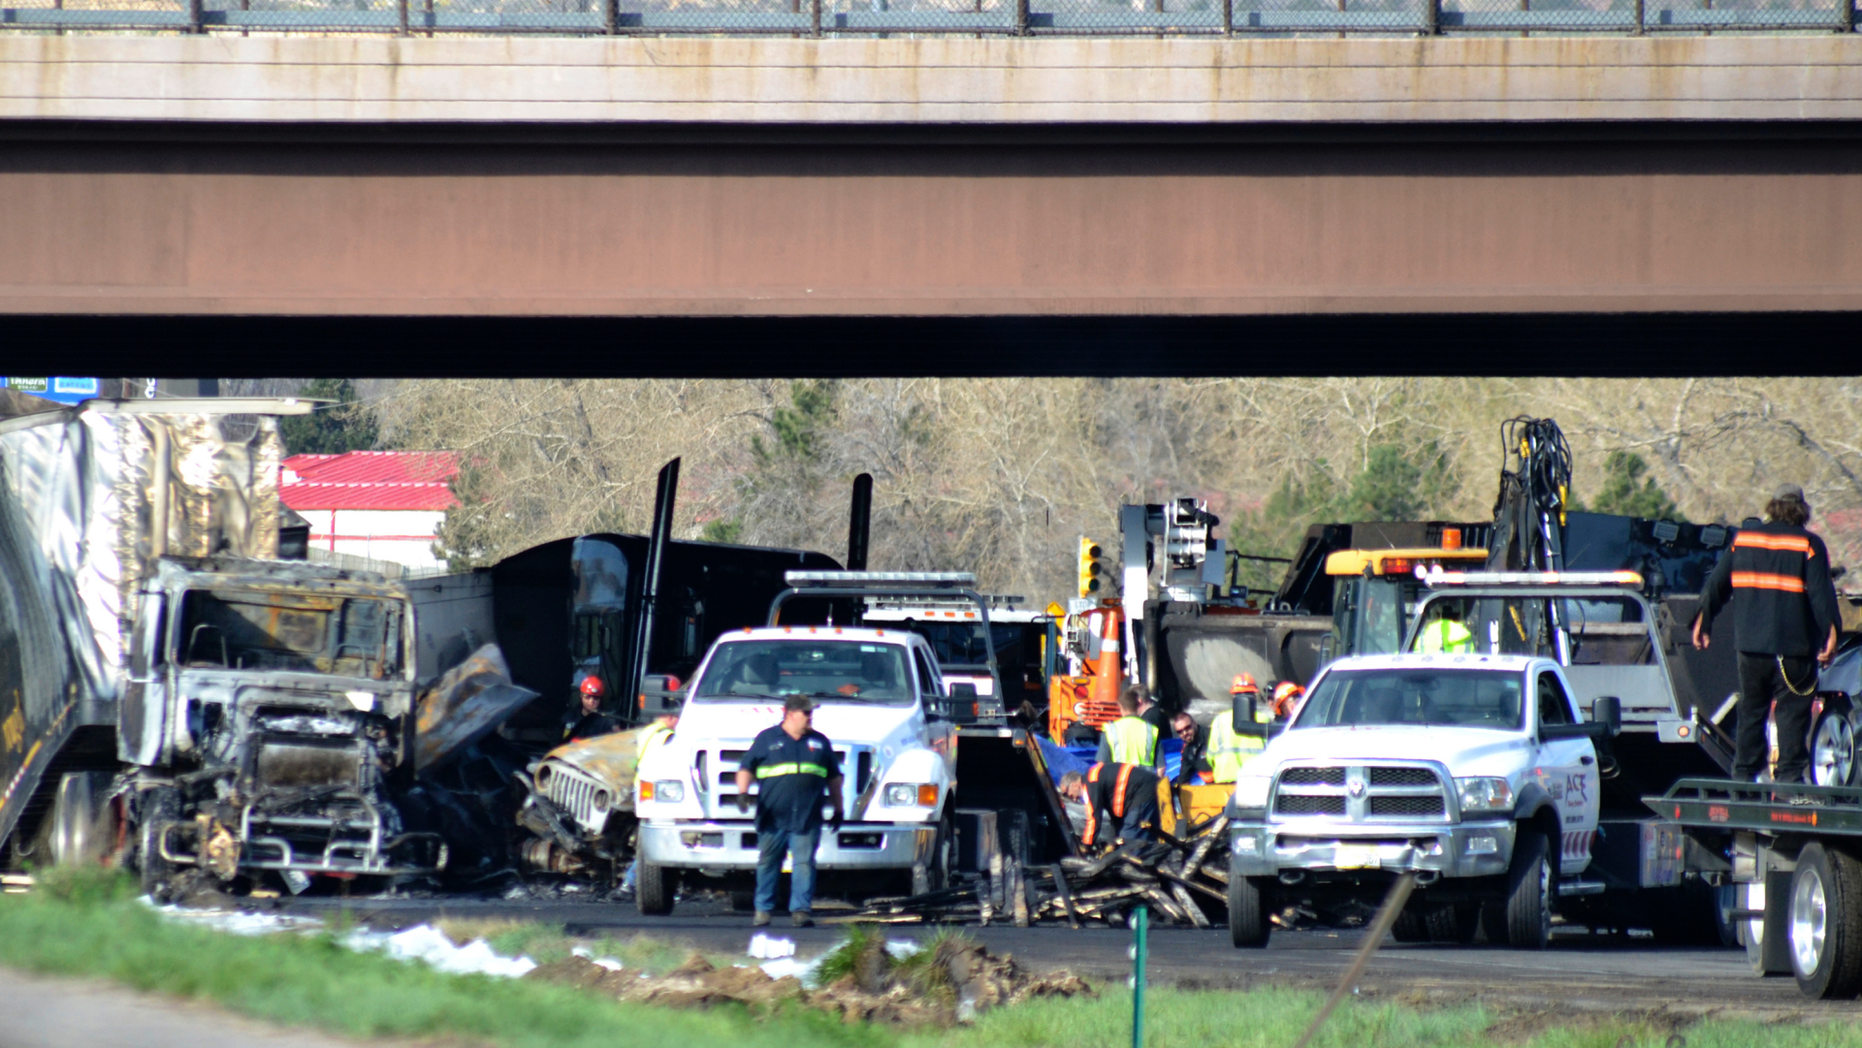 Authorities survey the scene of a fiery crash on I-70 near Colorado Mills Parkway that shut down the highway in both directions on Friday, April 26, 2019. Lakewood, Colo. A truck driver blamed for causing a deadly pileup involving over two dozen vehicles near Denver has been arrested on vehicular homicide charges. Lakewood police spokesman Ty Countryman said Friday that there's no indication that drugs or alcohol played a role in Thursday's crash. (AP Photo/Peter Banda)